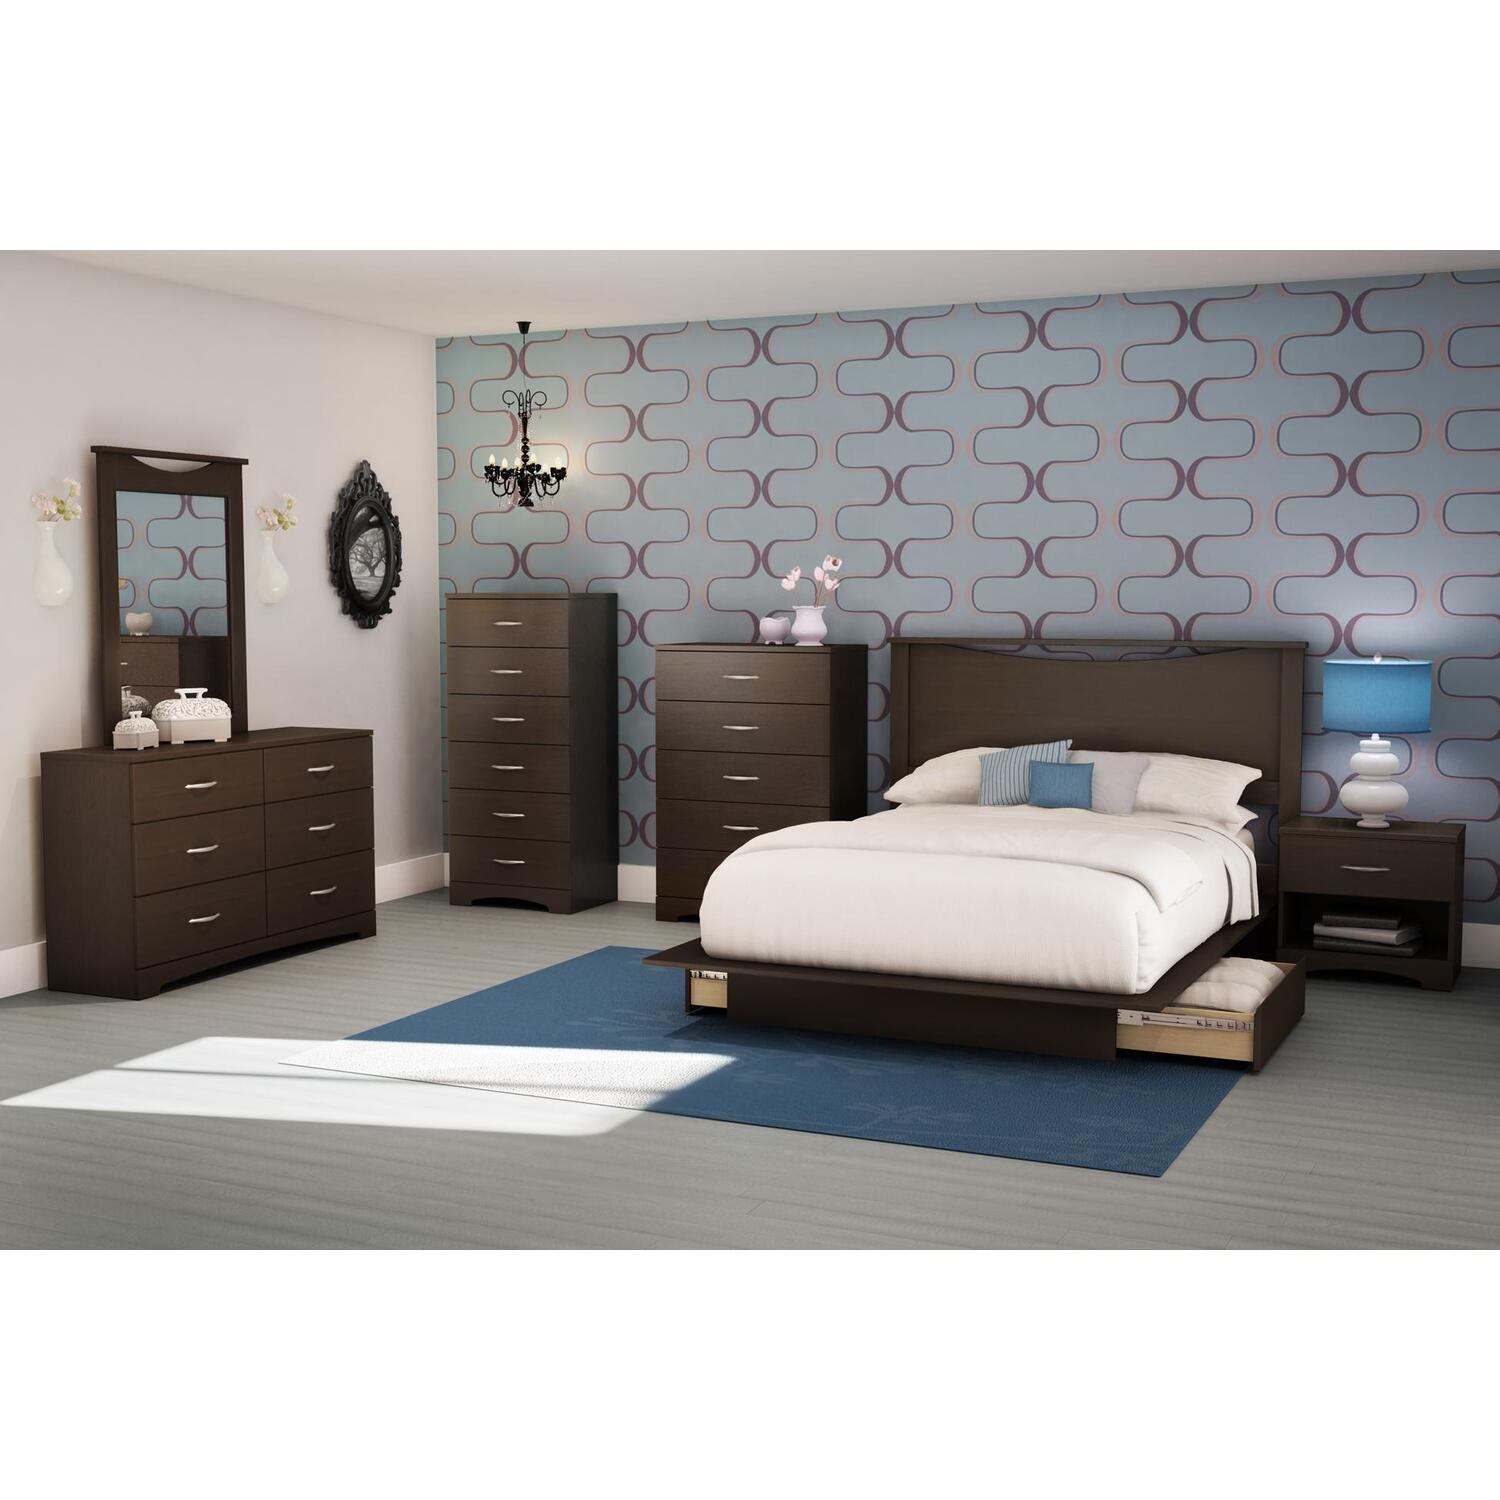 Charmant Back Bay Full/Queen Platform 7 Piece Bedroom Set   [3159FQ7PC]